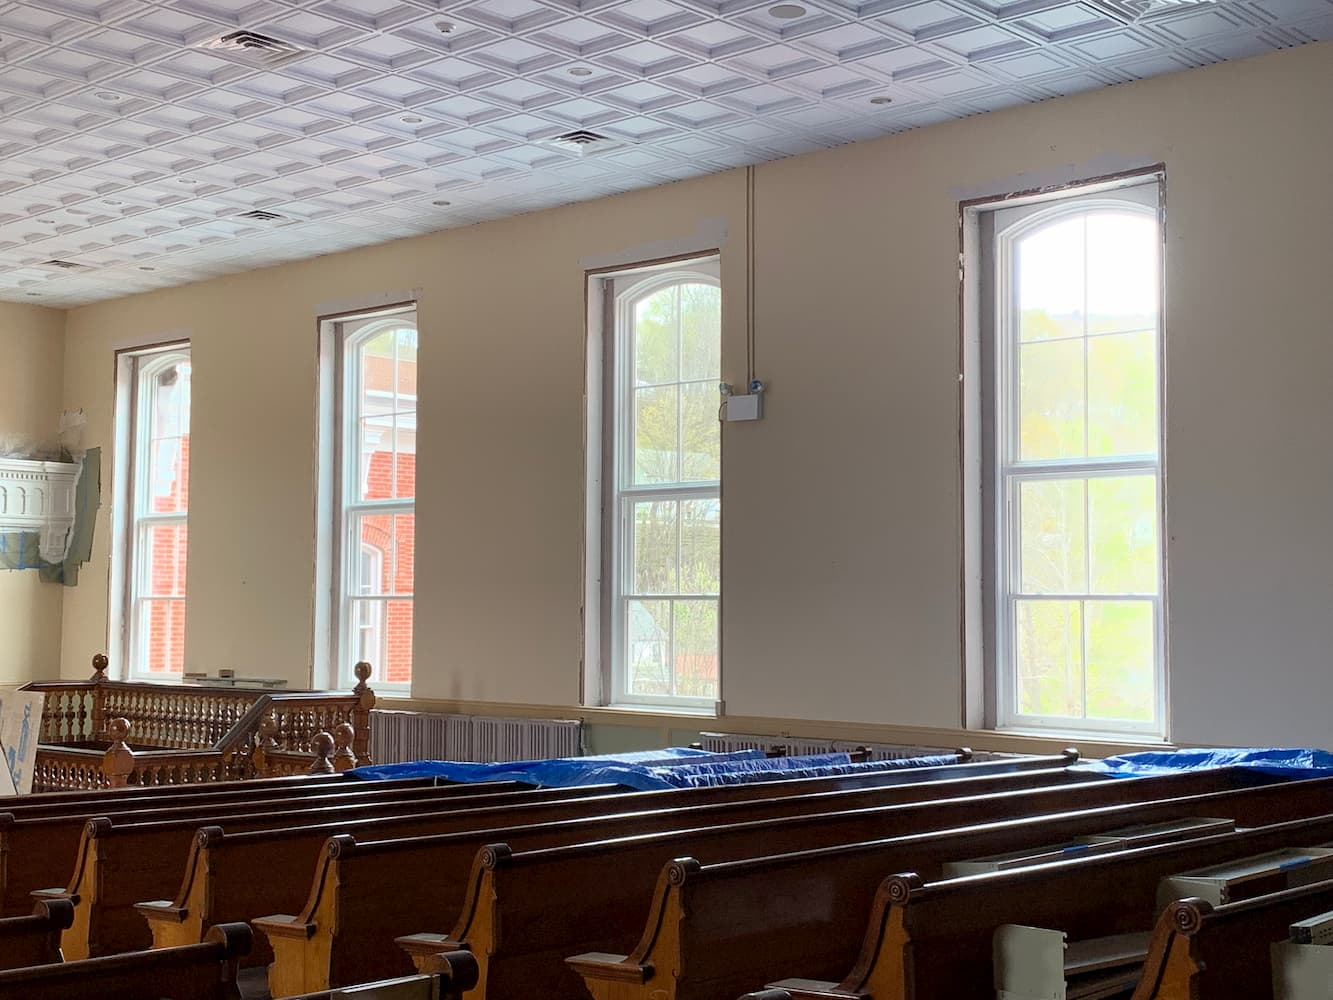 Interior view of courtroom in Wayne County Courthouse with all new wood windows from Pella